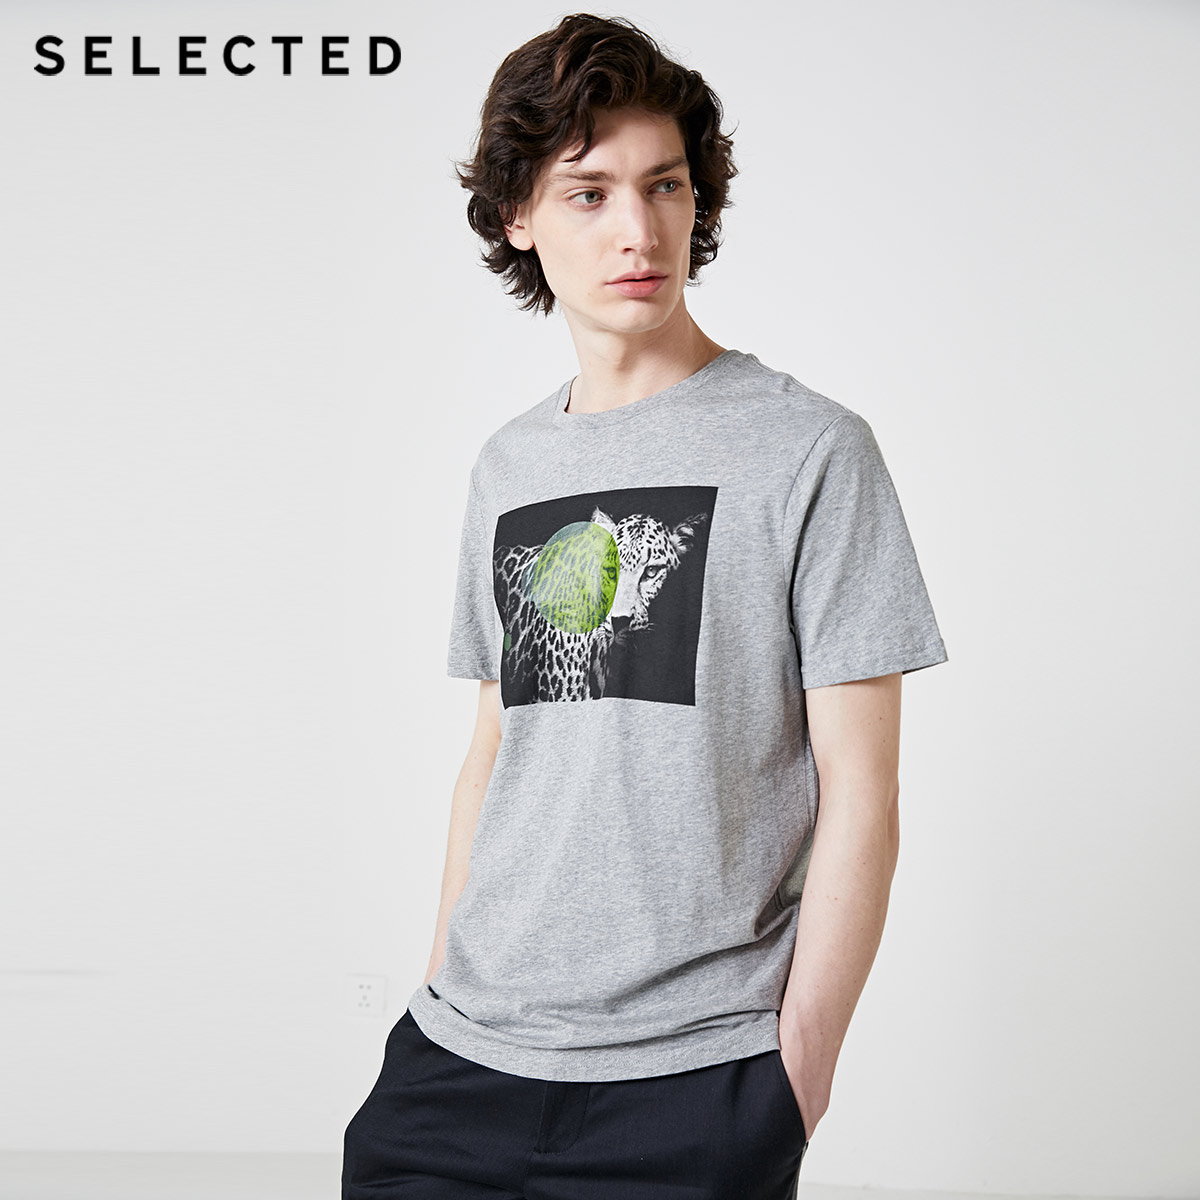 SELECTED Men's Printed Animal Pattern Short-sleeved 100% Cotton Casual T-shirt S | 419101515